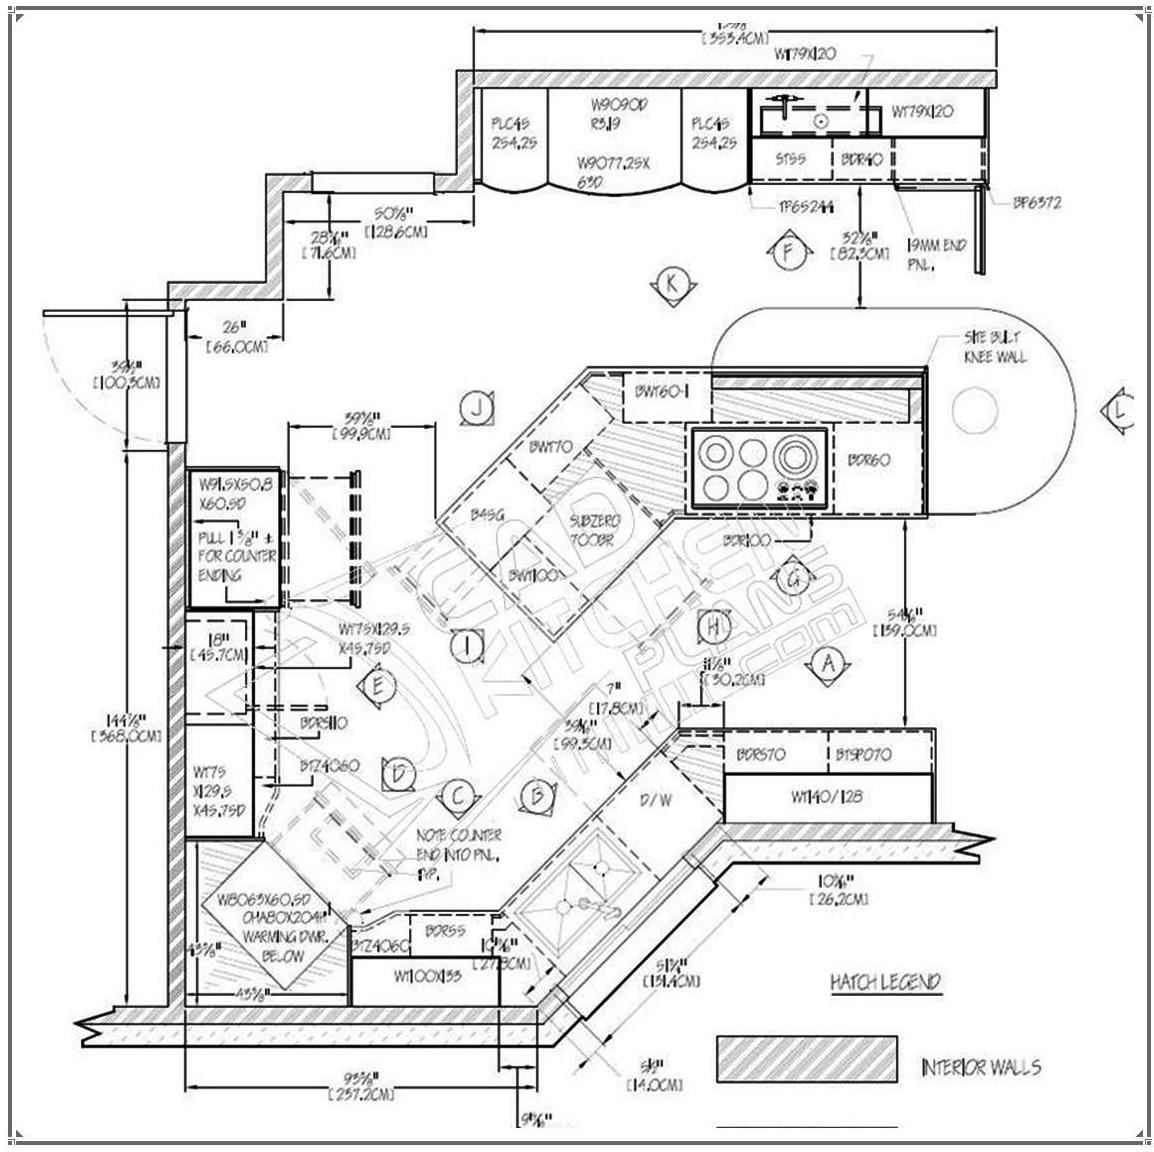 Kitchen Layout Autocad Blocks: Kitchen Autocad Drawing At GetDrawings.com